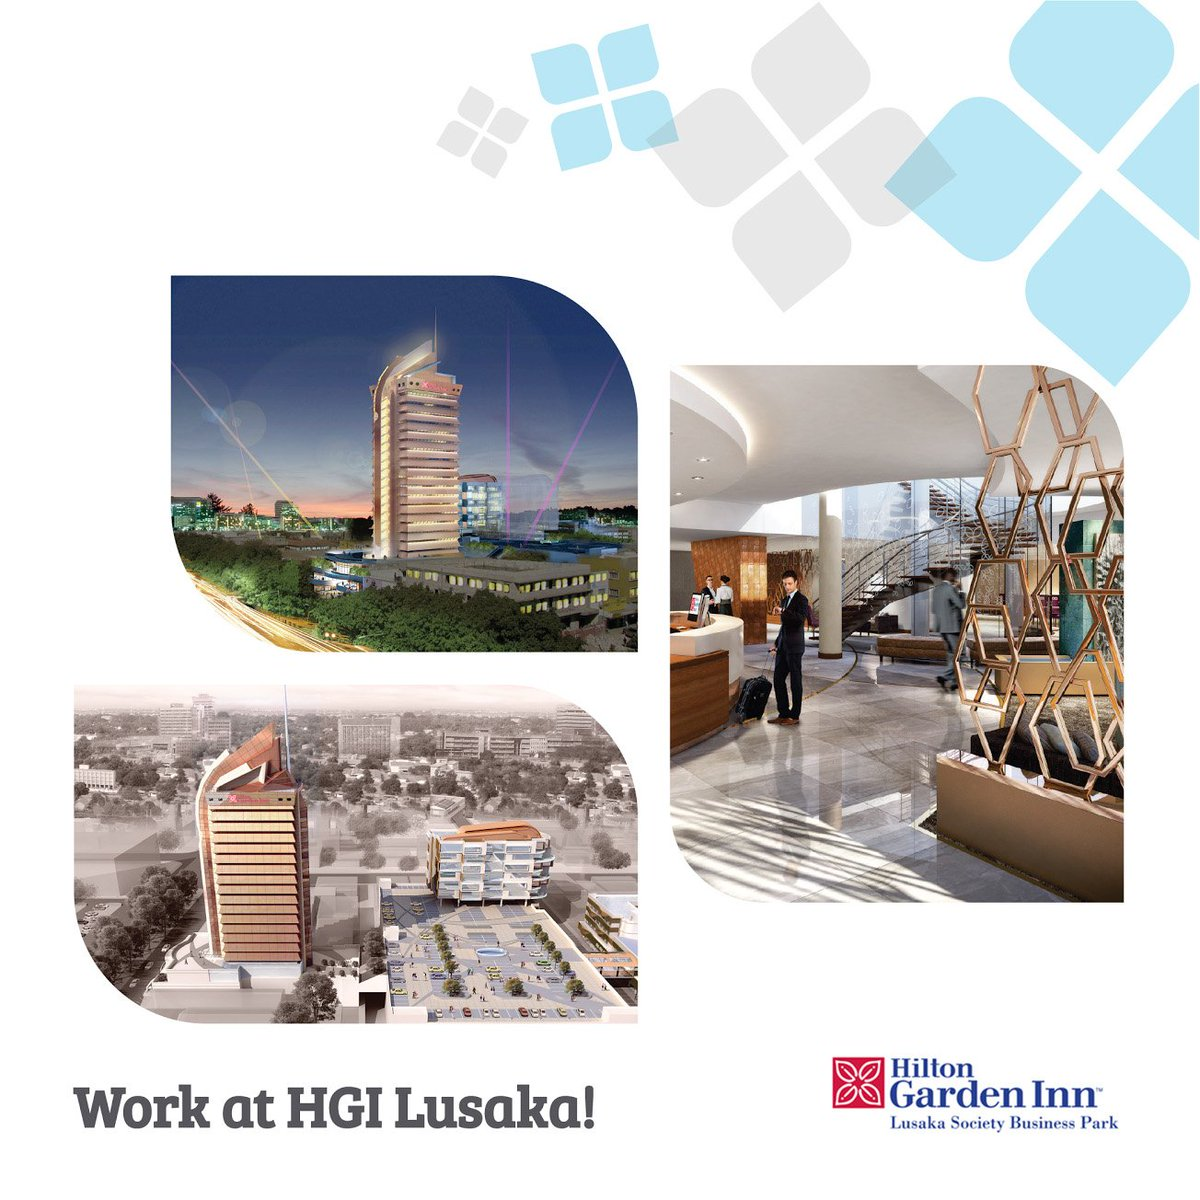 Hilton Garden Inn Lusaka On Twitter: